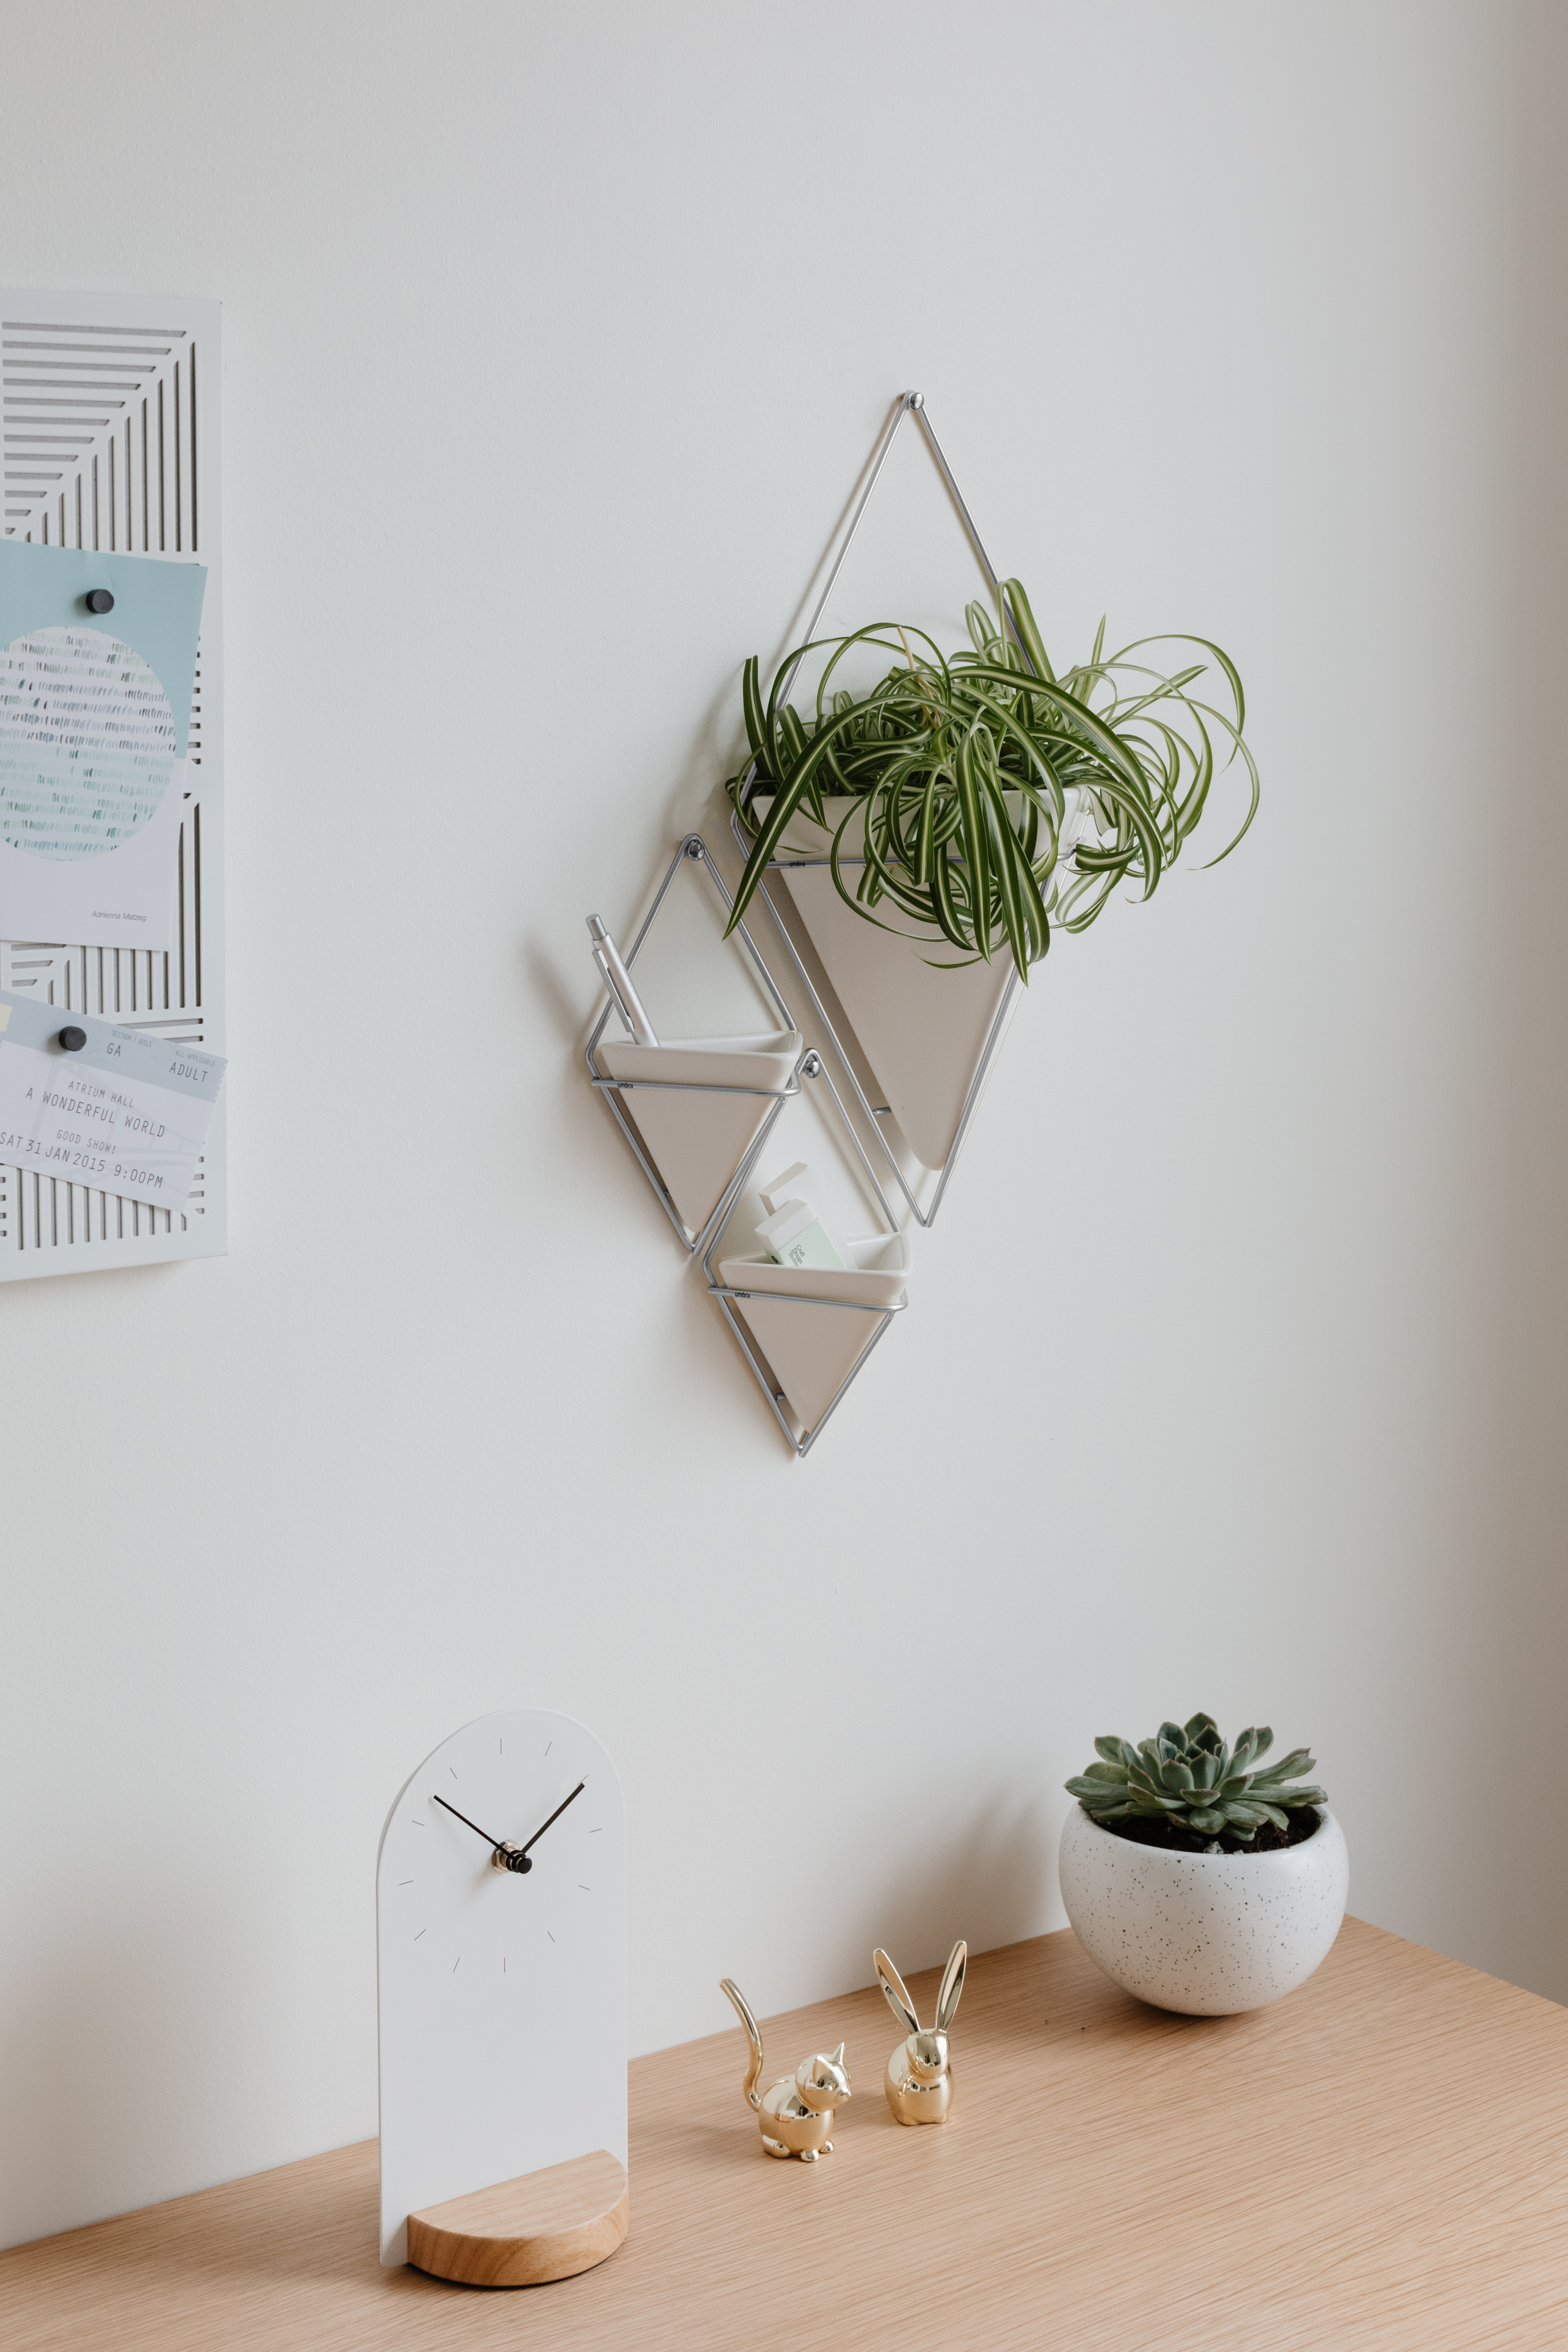 2020 Trigg Hanging Planter Vase & Geometric Wall Decor Container – Great With Regard To 2 Piece Trigg Wall Decor Sets (Set Of 2) (Gallery 14 of 20)